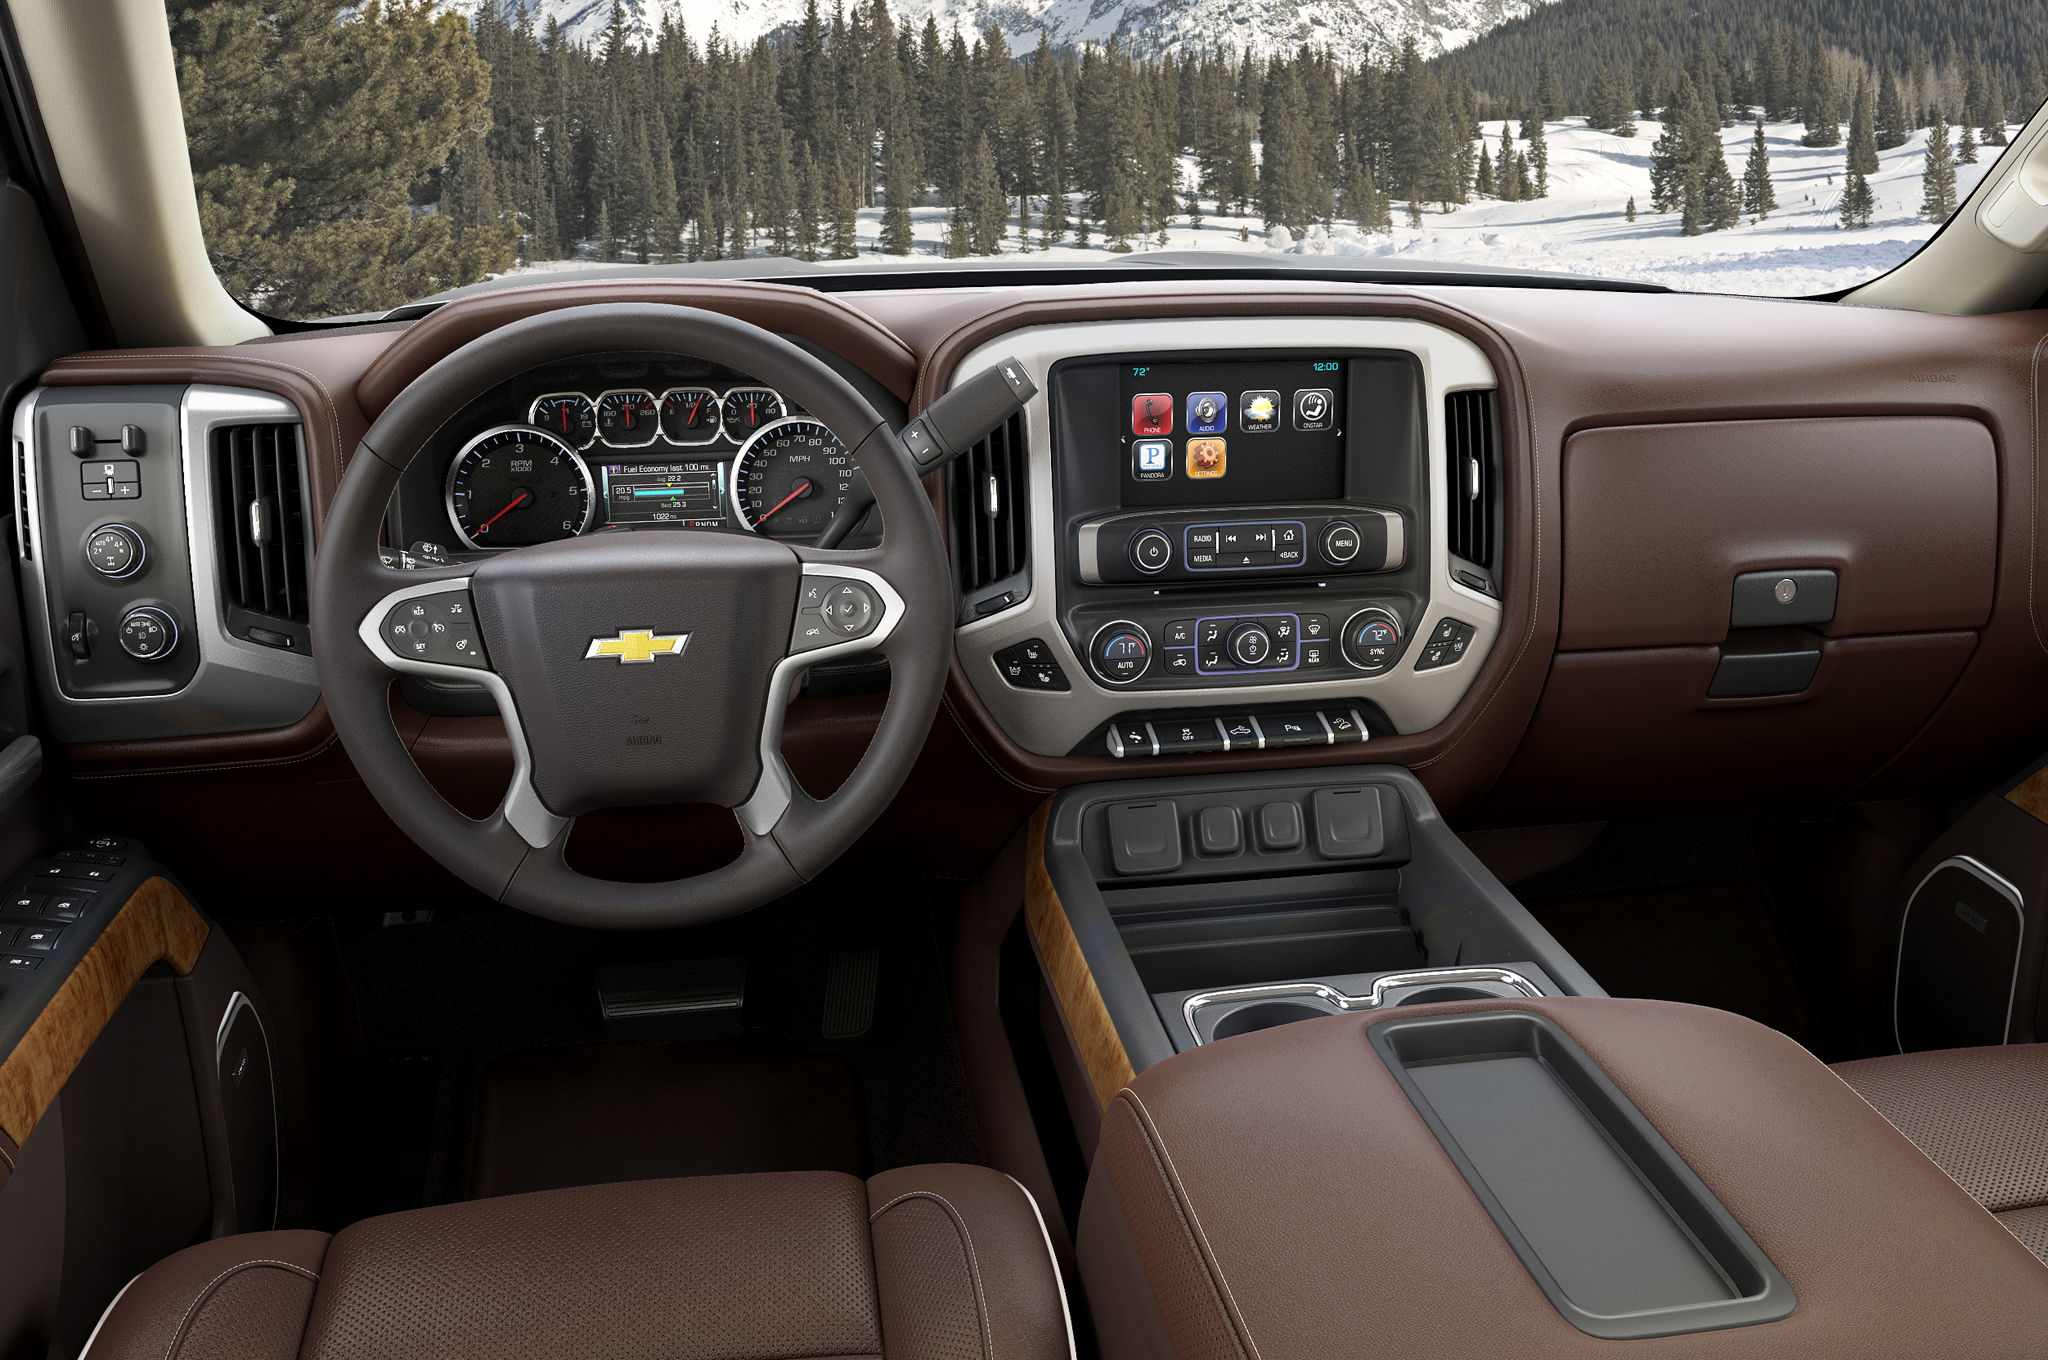 2014 Chevrolet Silverado, GMC Sierra 1500s Recalled For Seat Issue